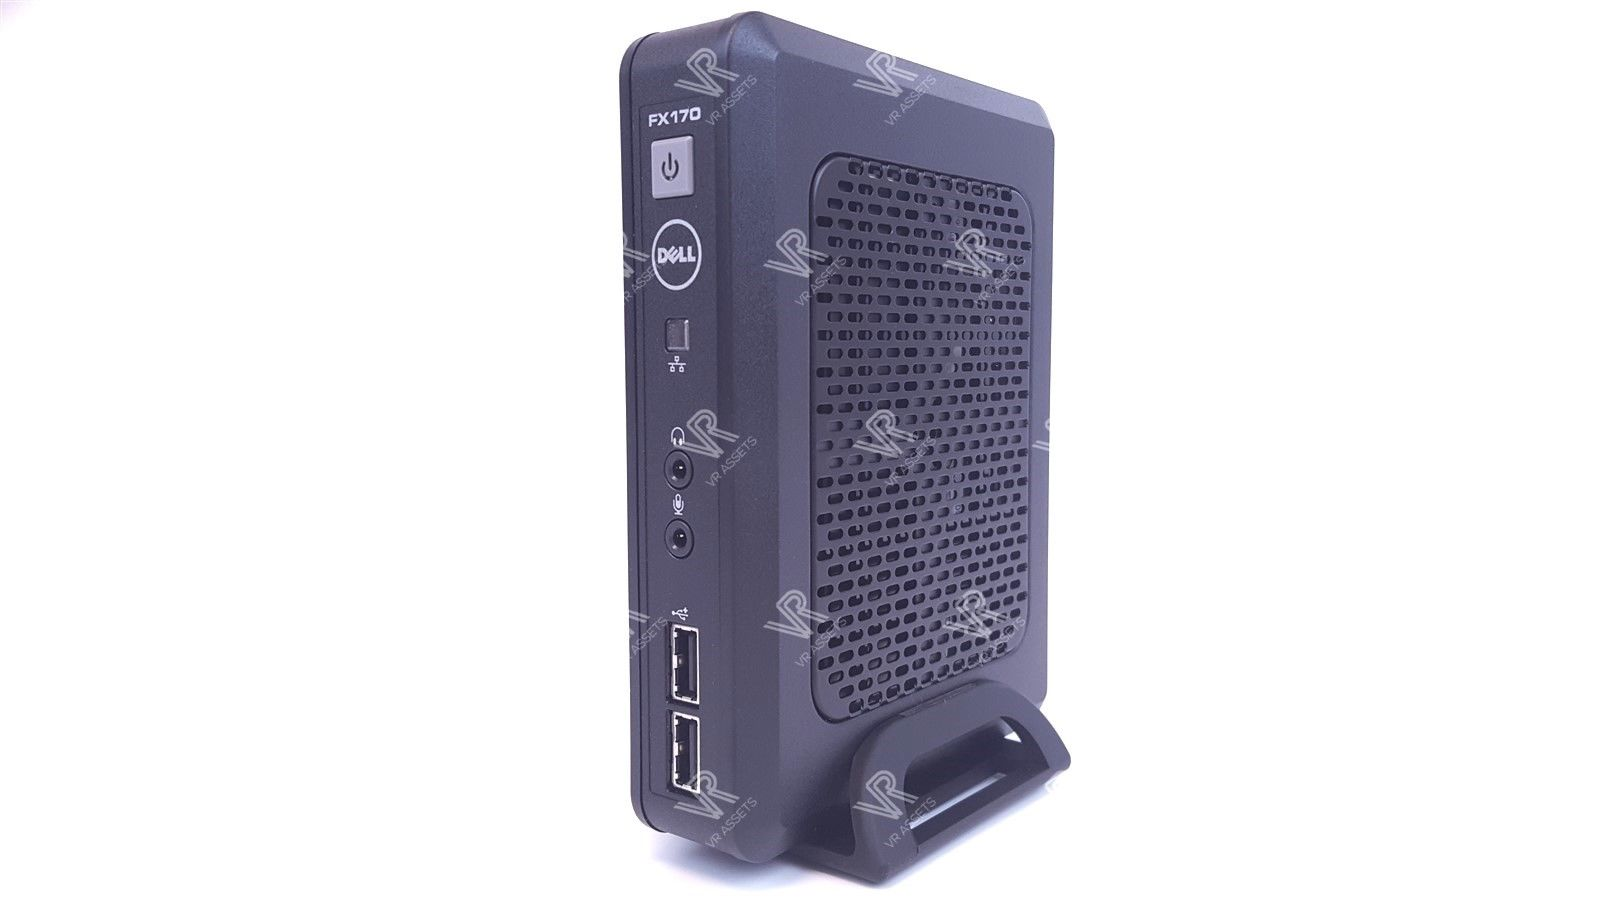 Dell Optiplex FX170 1.6GHz 1Gb Ram 1Gb Flash Thin Client D05U002 TN10J New